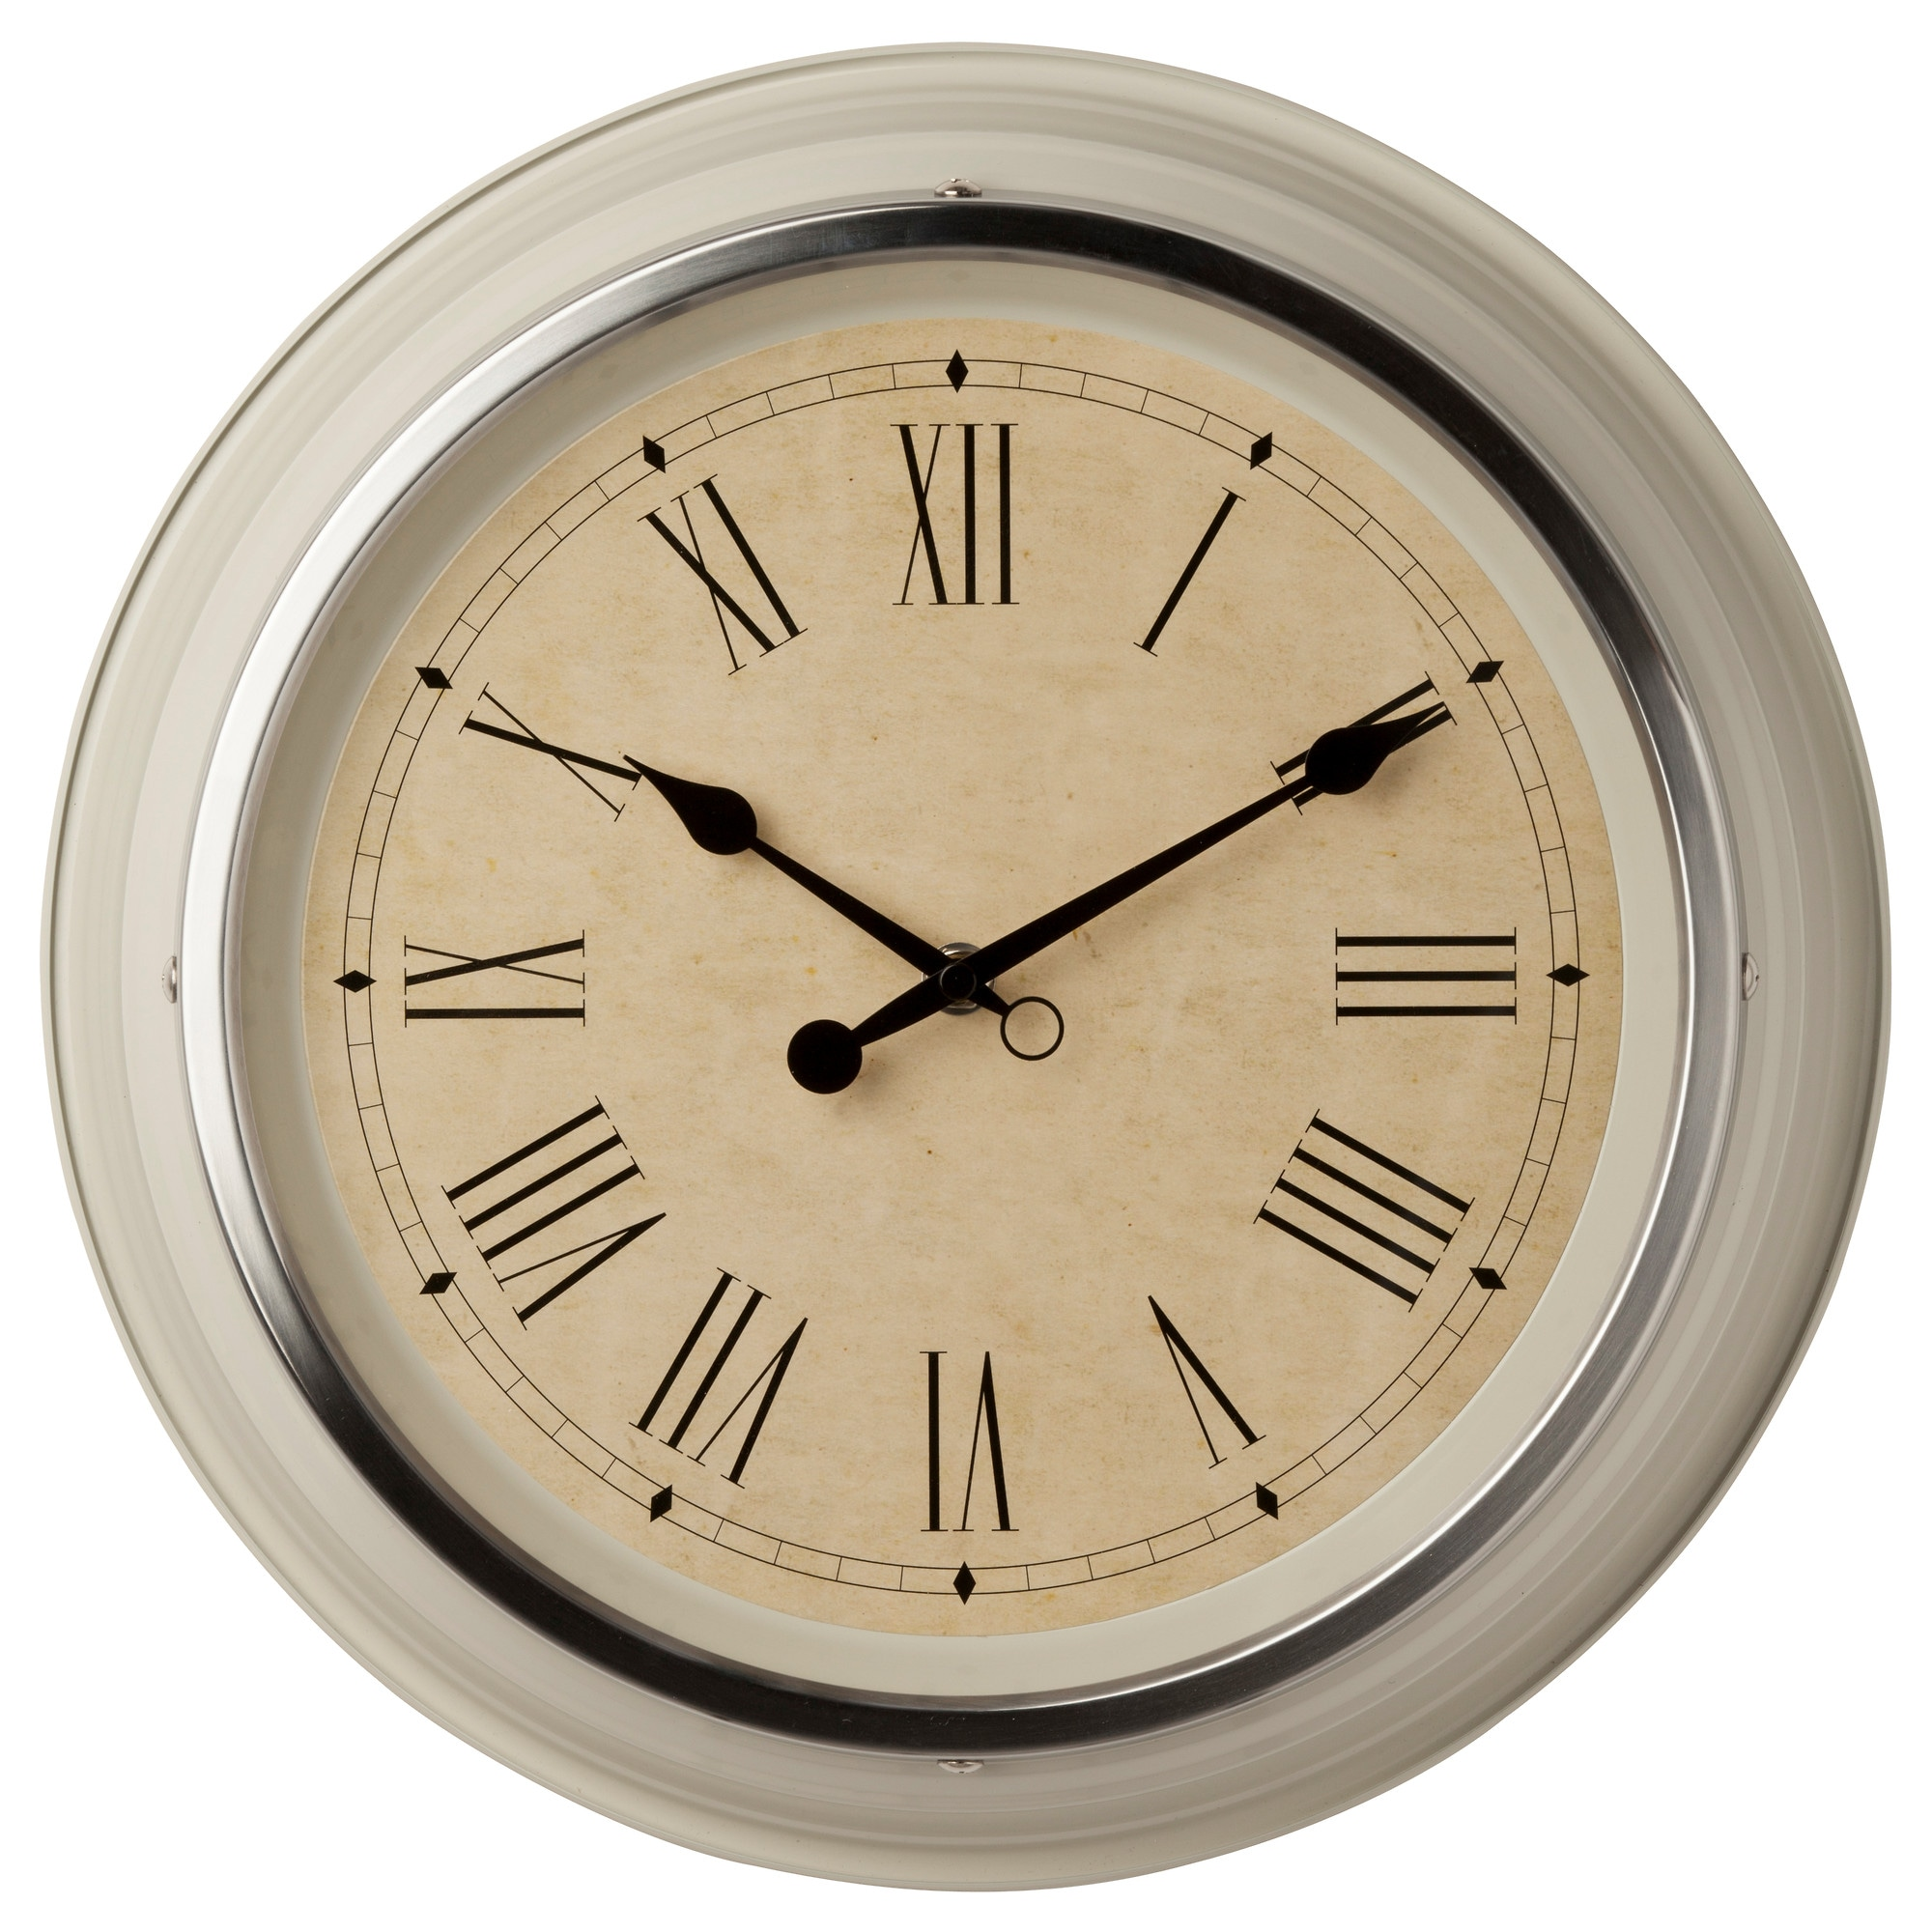 Clocks for bathroom wall - Clocks For Bathroom Wall 9